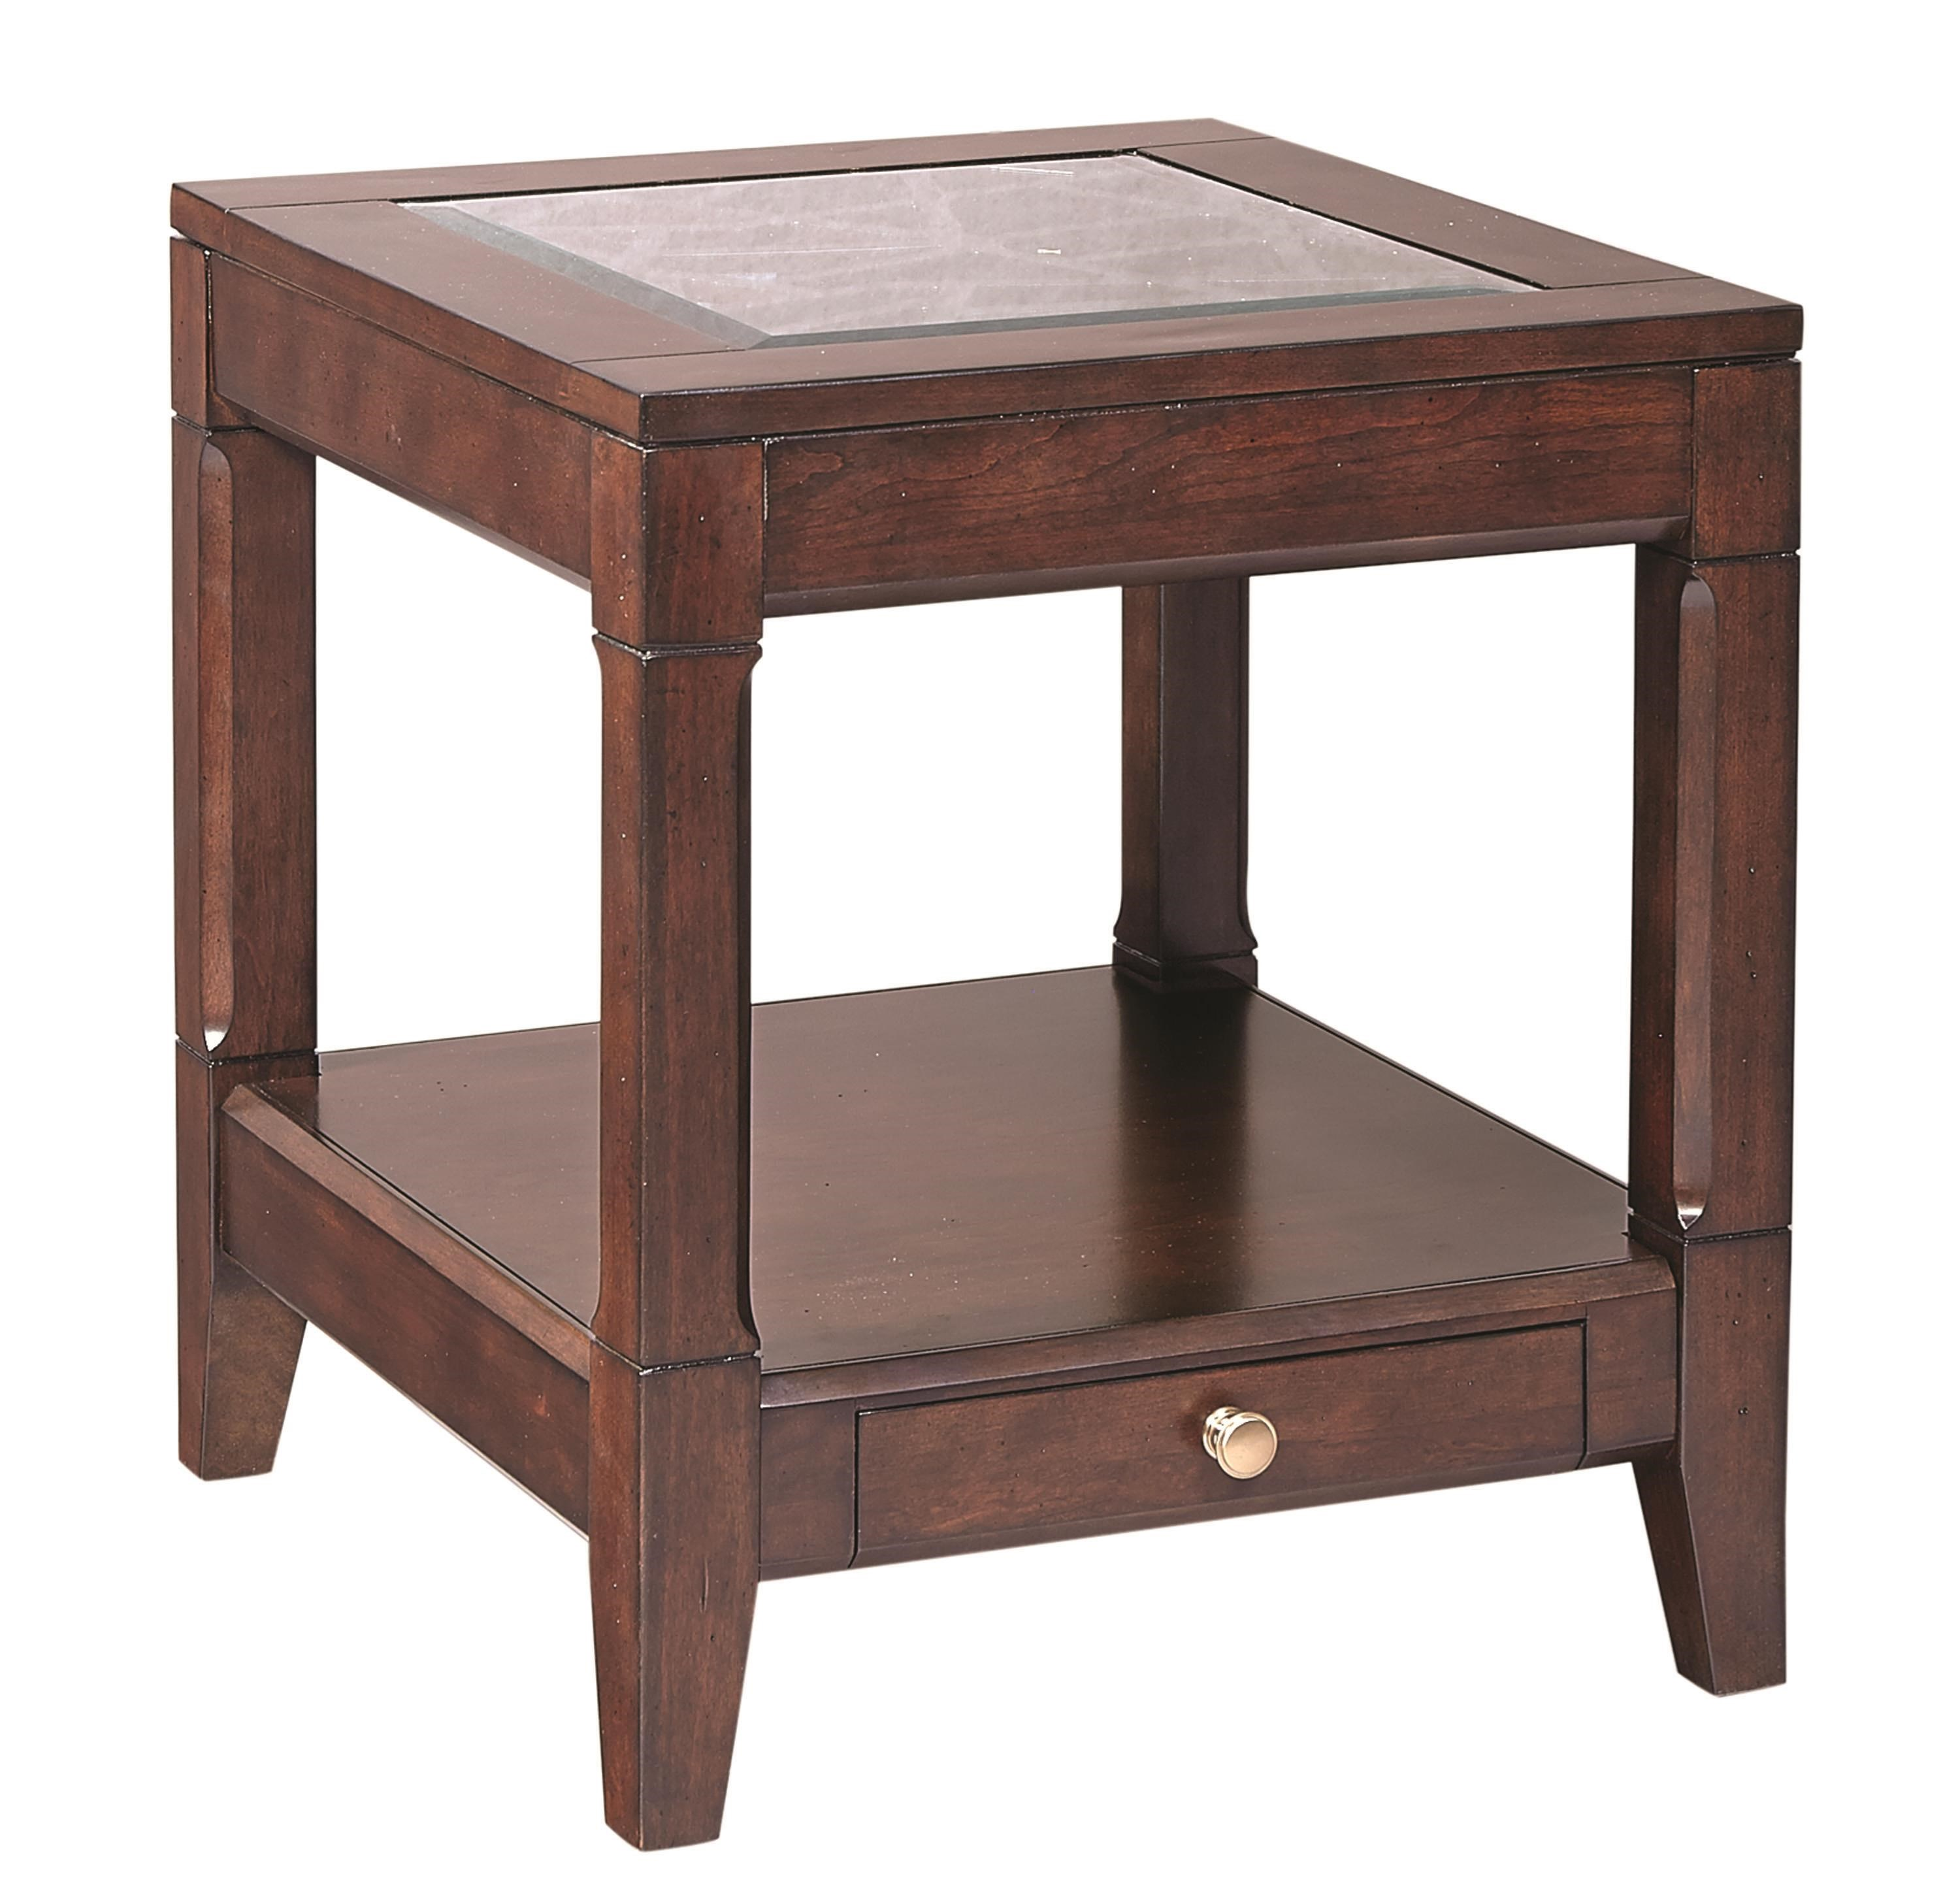 Highland court atlas end table morris home end tables highland court atlas atlas end table item number 562815284 geotapseo Images